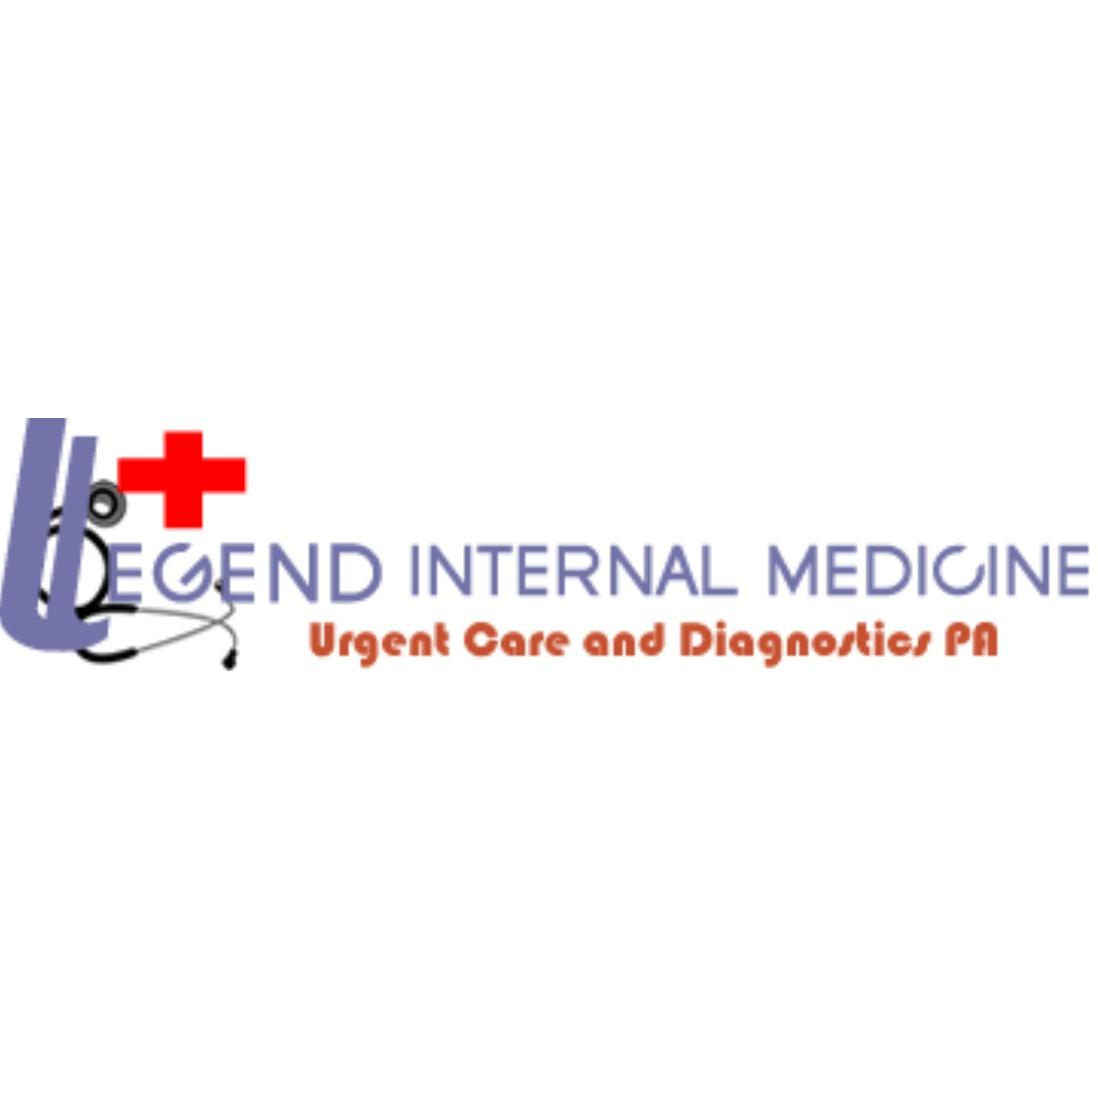 Legend Internal Medicine Urgent Care & Diagnostics PA